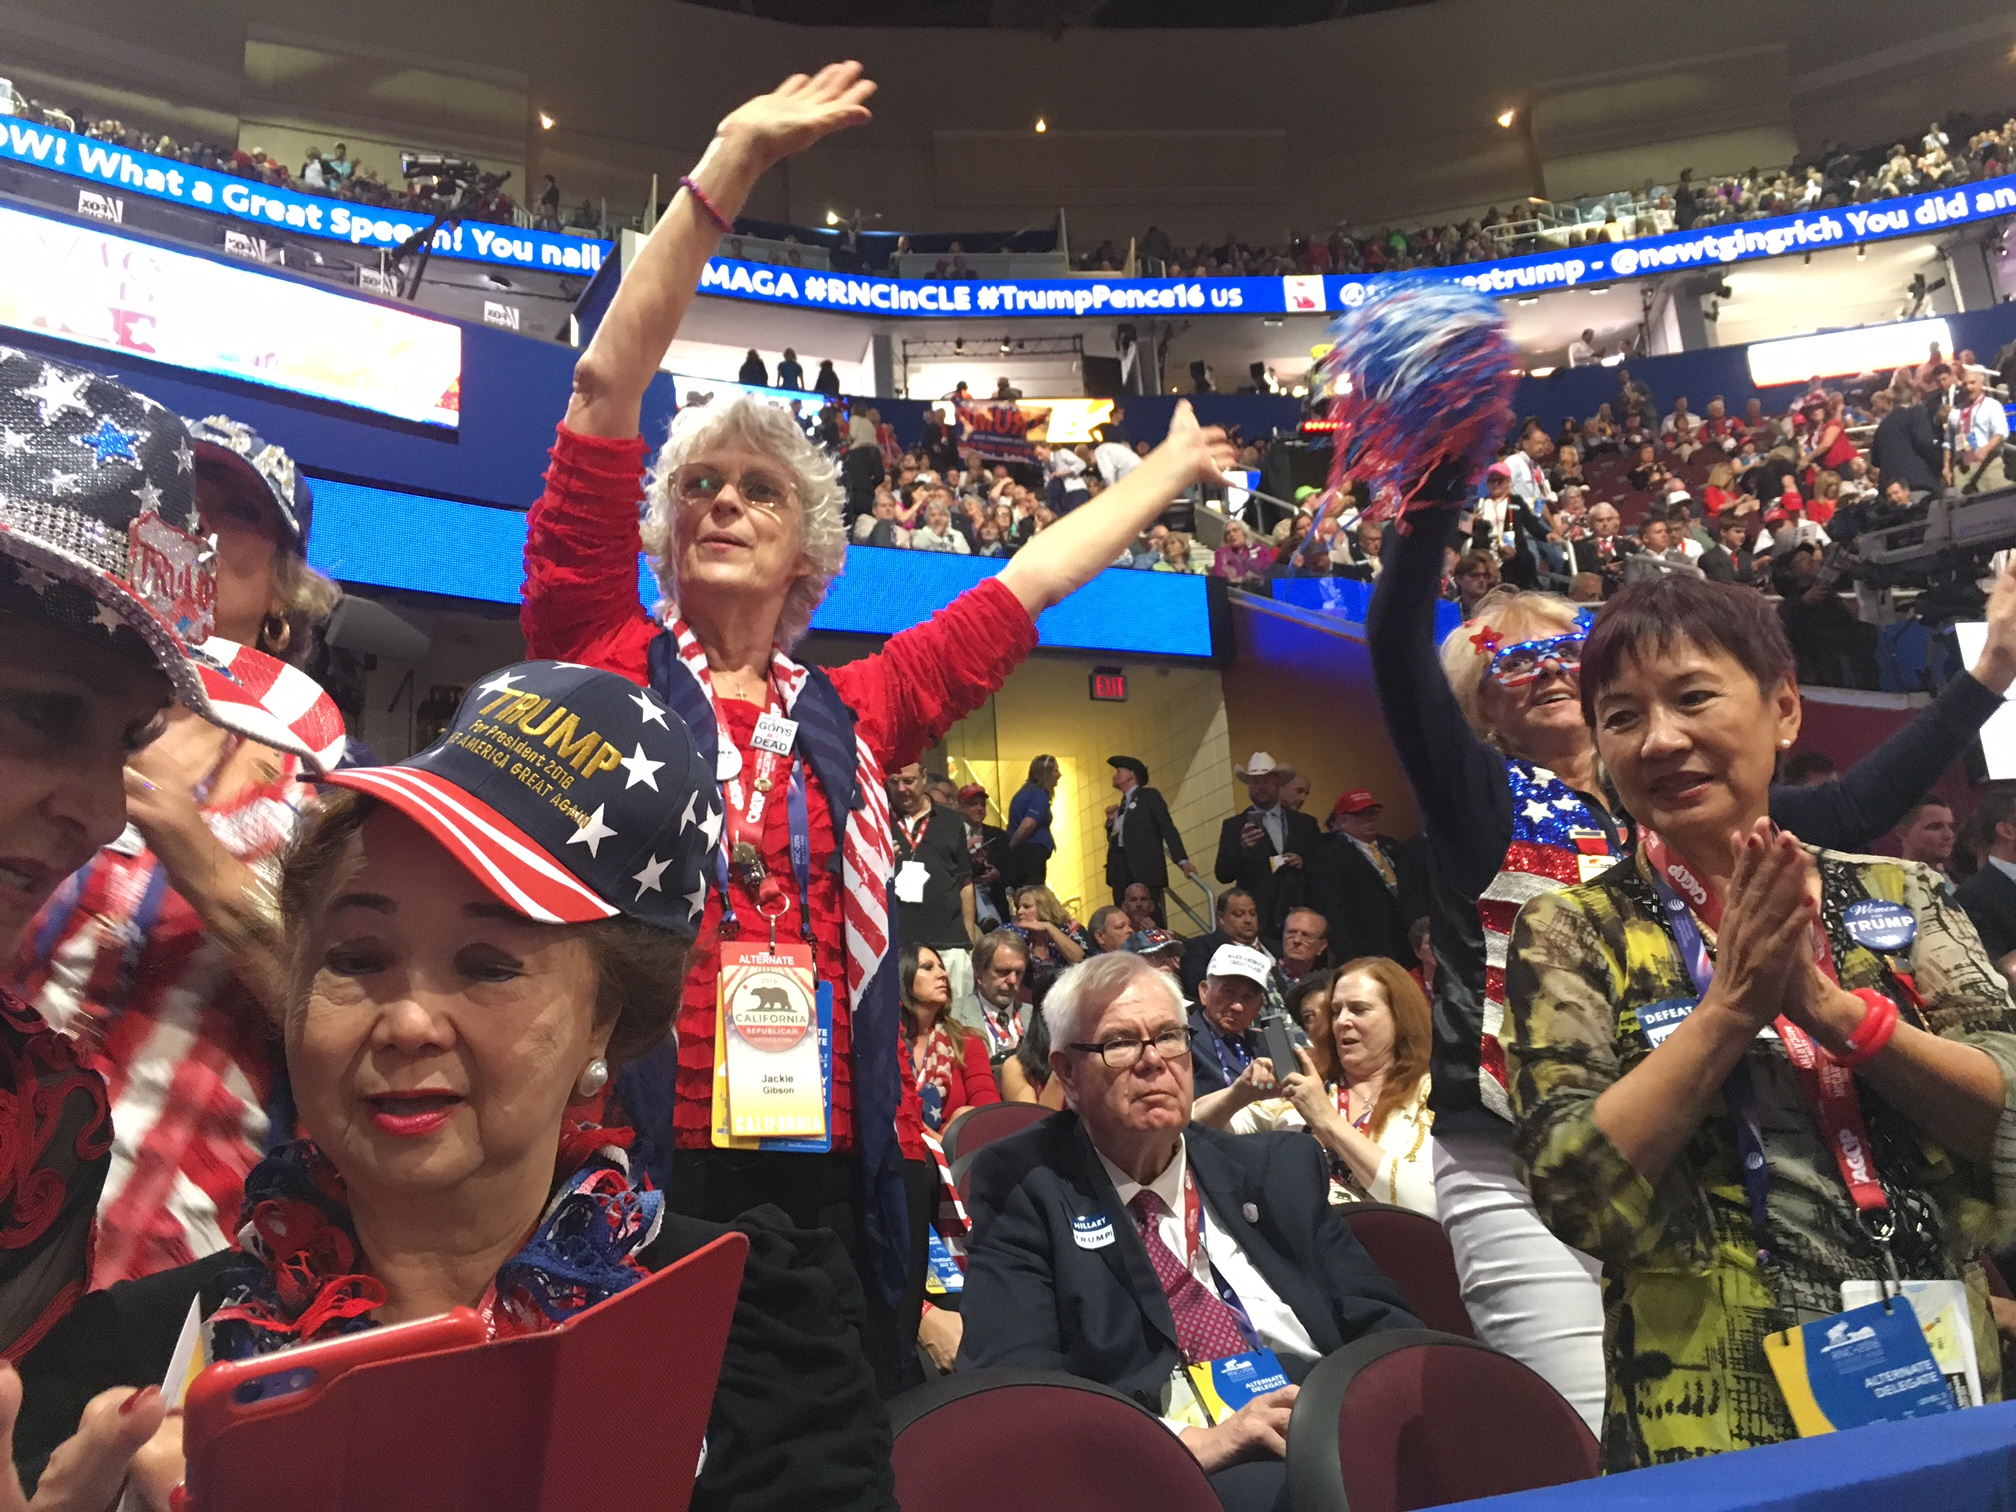 RNC attendees dance to music.